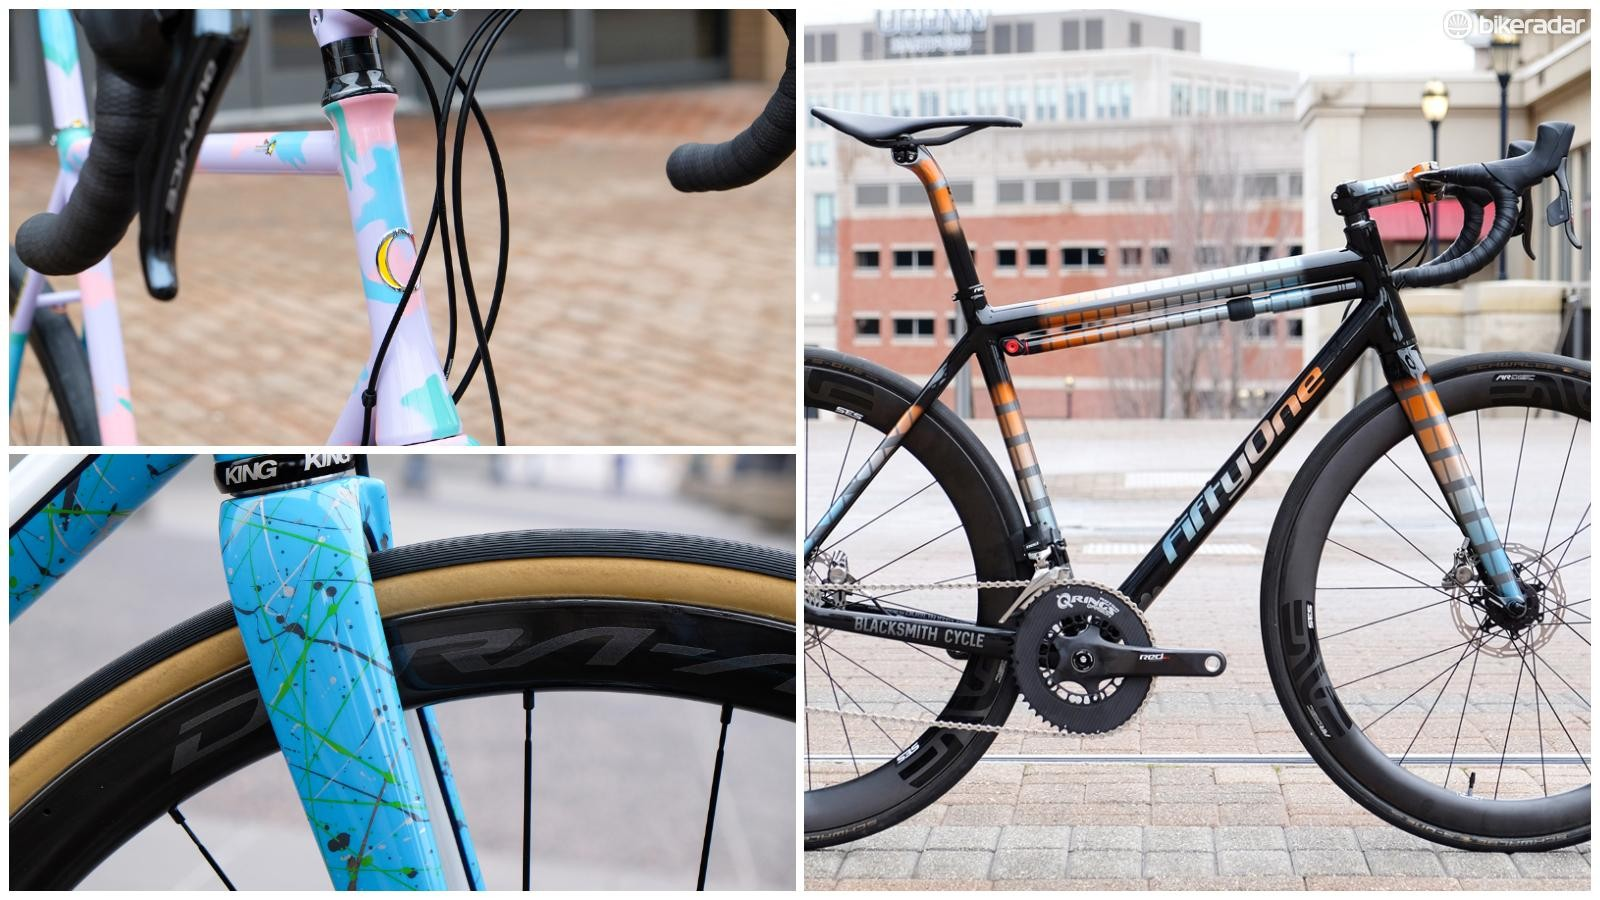 NAHBS is always full of stunning creations. Here's a look a three road bikes that caught my eye